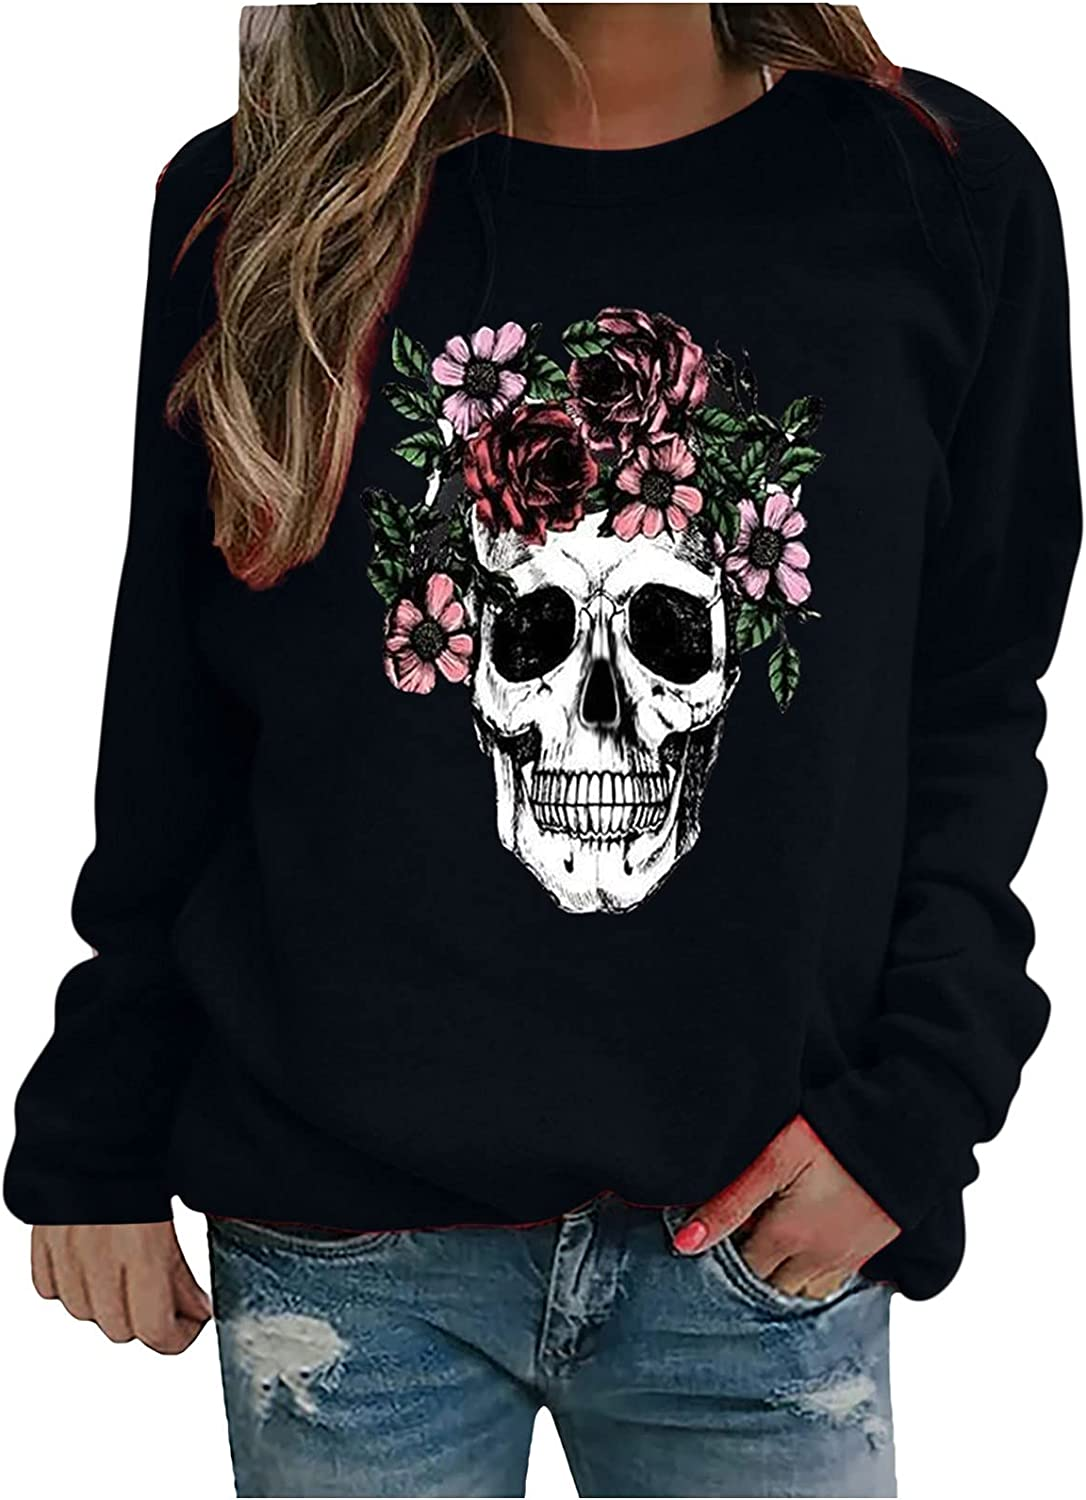 Womens Styles Rose Skull Sweatshirts Day of The Dead Halloween Long Sleeve Crew Neck Pullover Oversize Y2k Tops